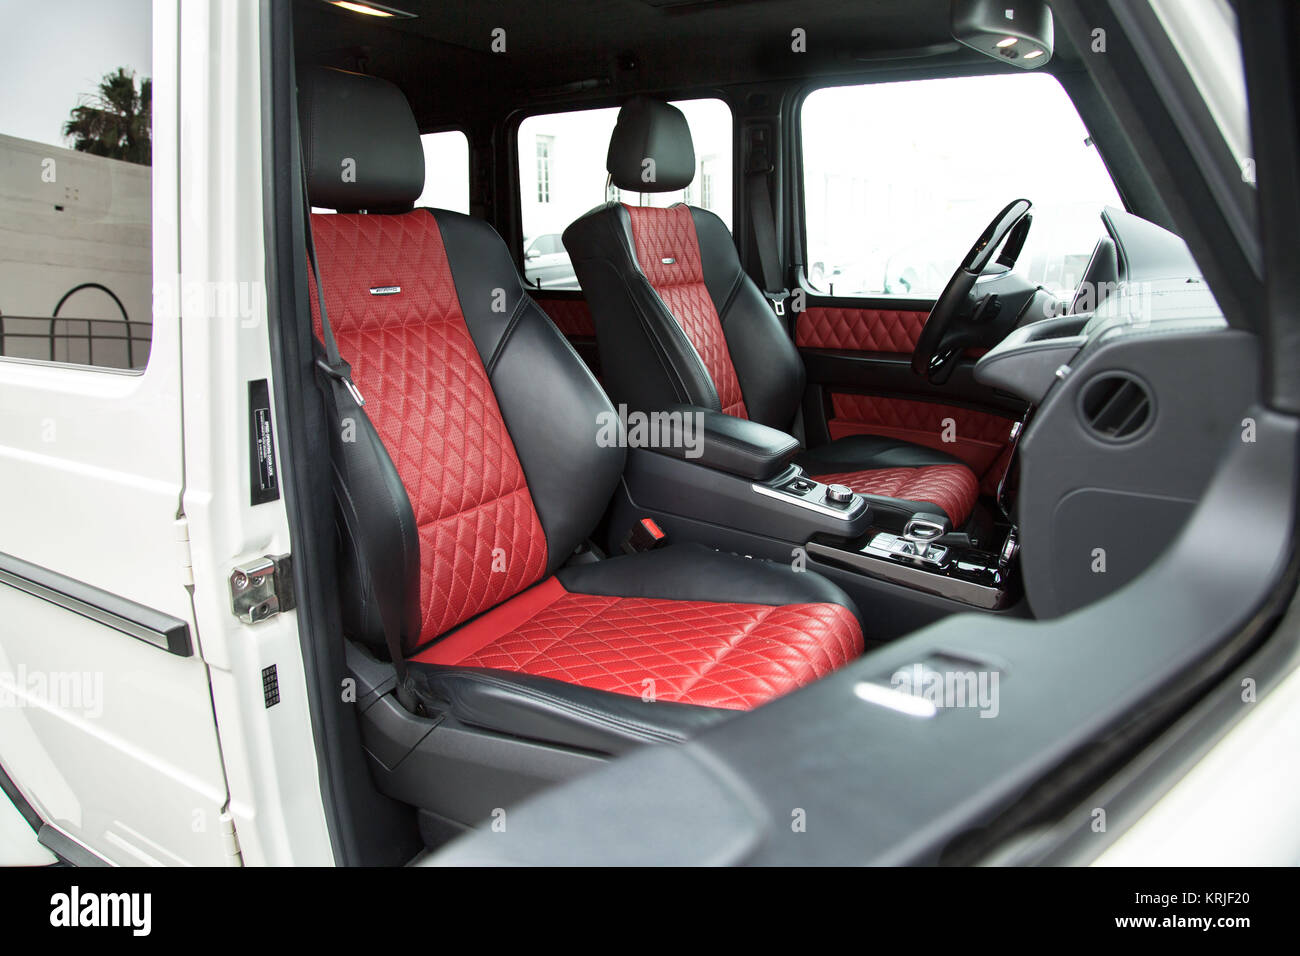 Mercedes Suv High Resolution Stock Photography And Images Alamy